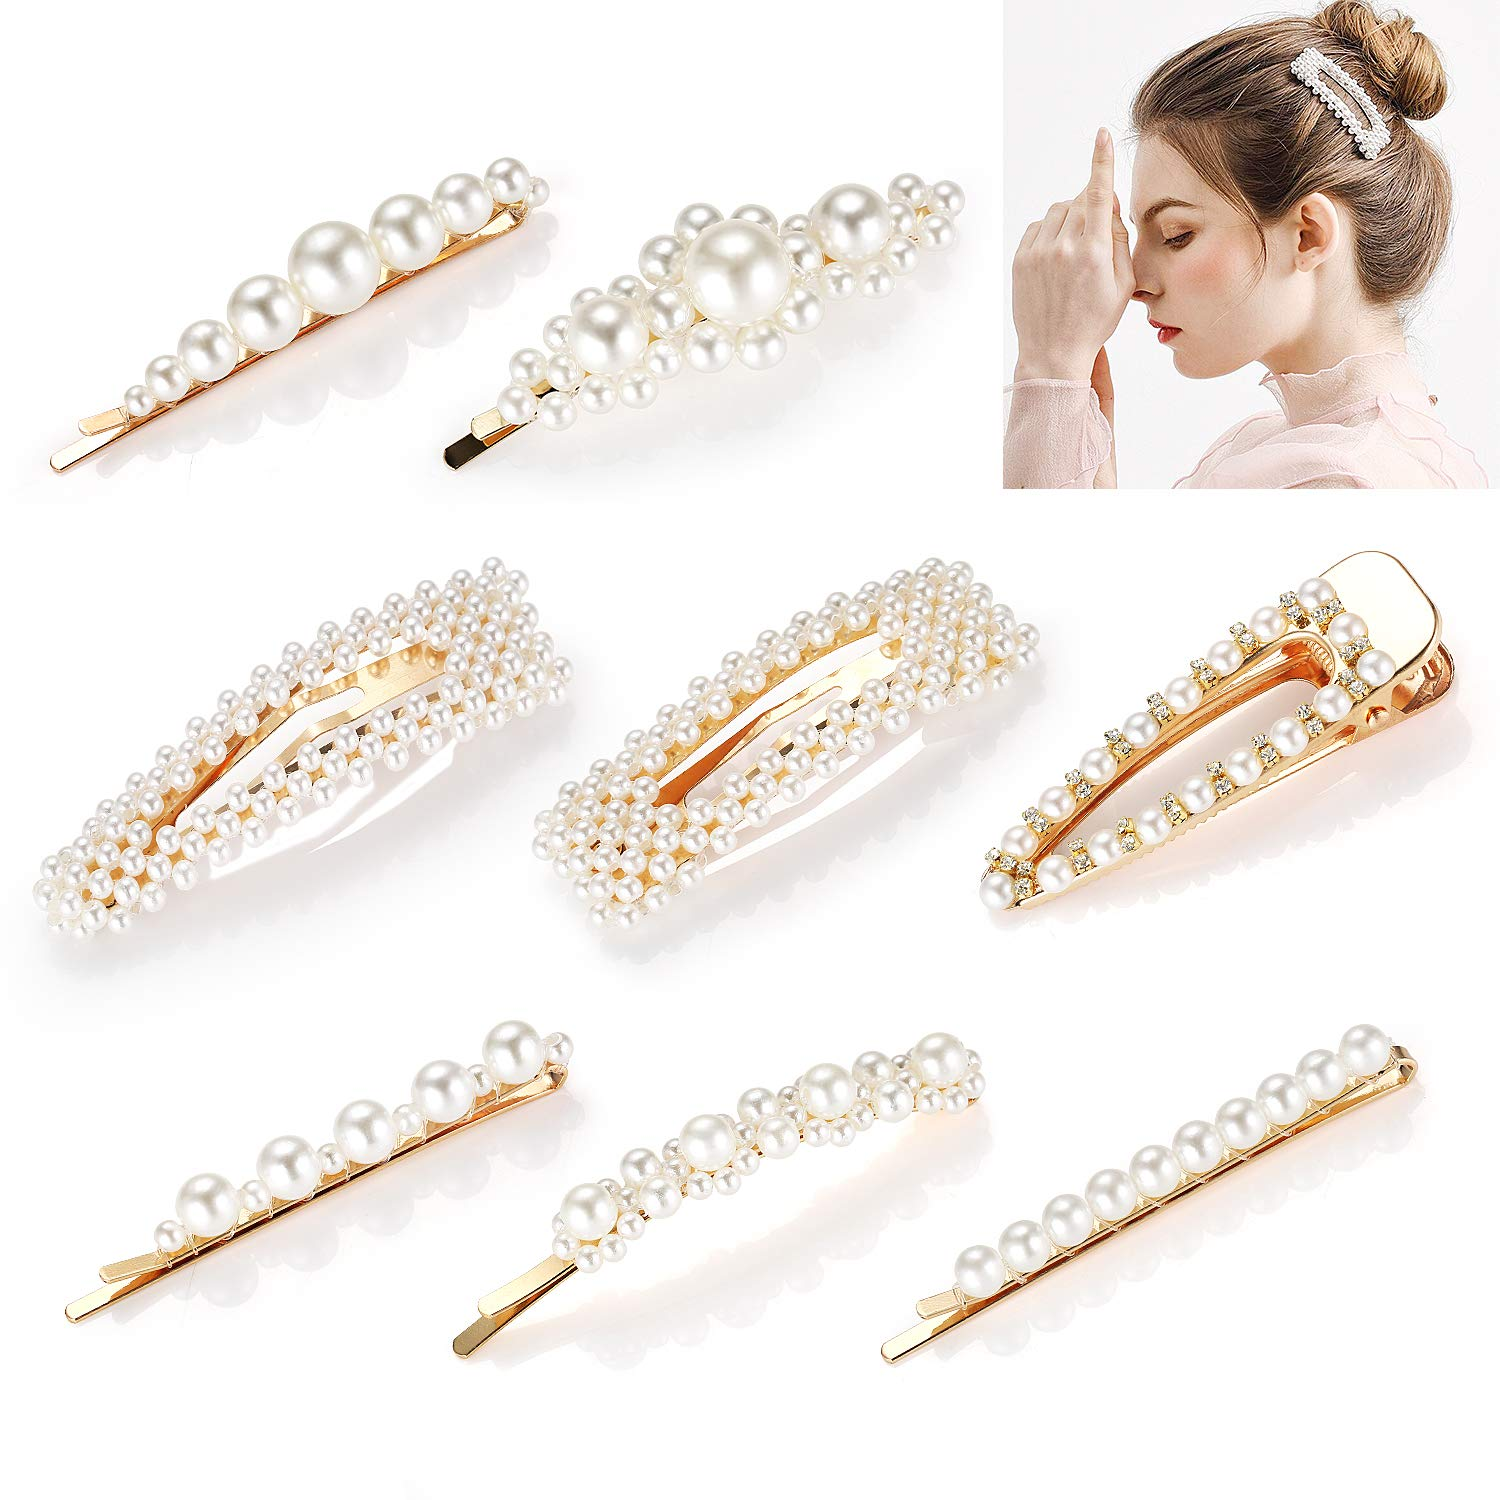 Pearl Hair Clips for Women Girls  Funtopia 8pcs Fashion Sweet Artificial Pearl Alligator Clips Barrettes Bobby Pins Snap Clips Decorative Hair Accessories for Party Wedding Daily  Applies to Bun Updo